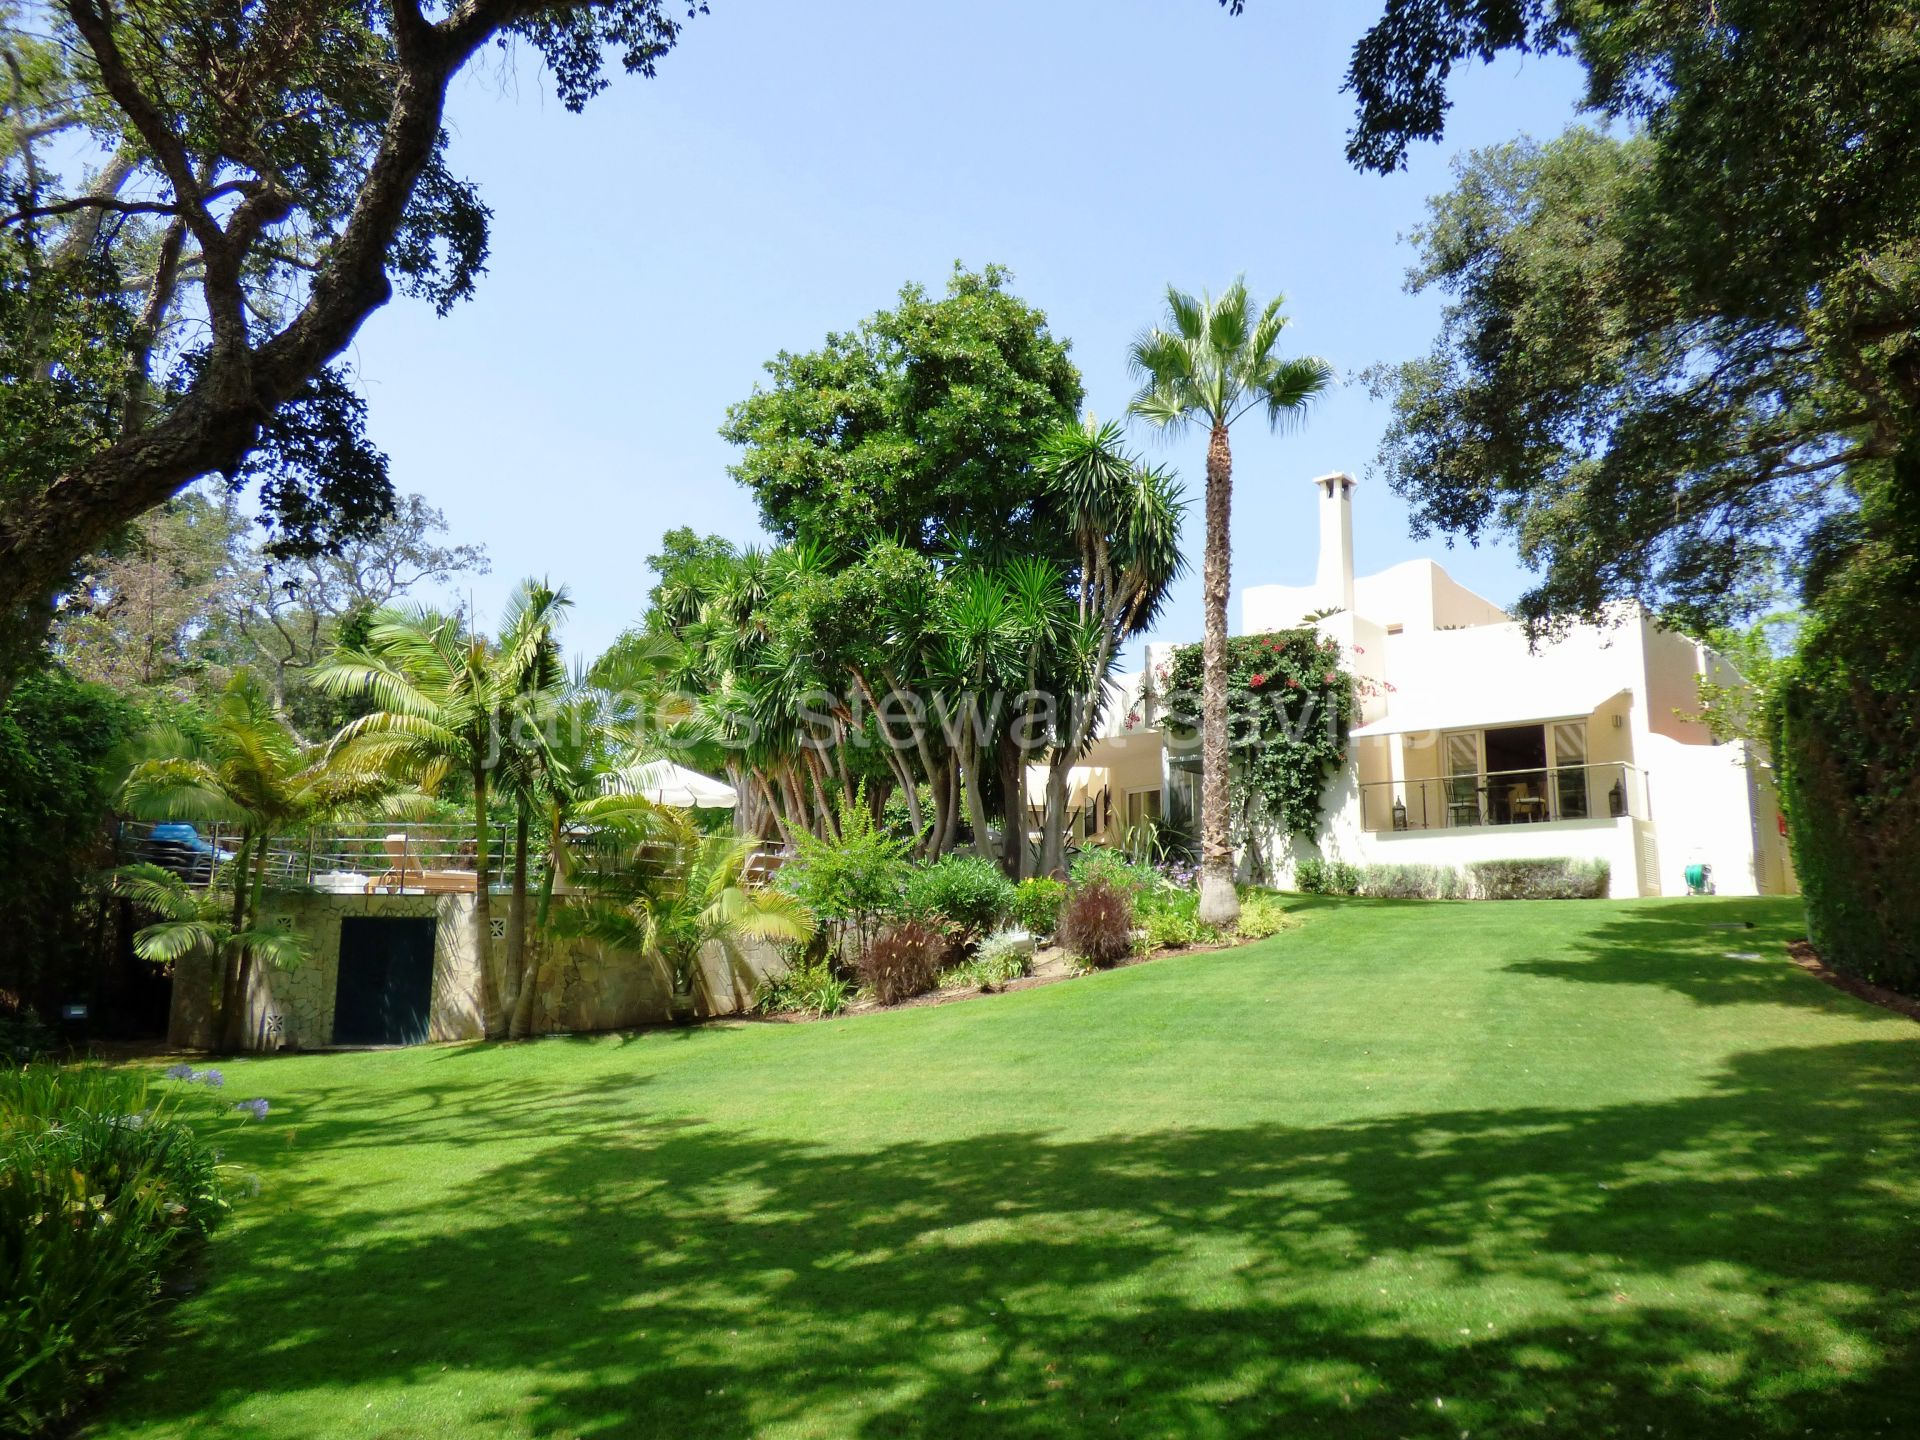 Very original Ibiza style villa with lovely lush gardens in Sotogrande Costa